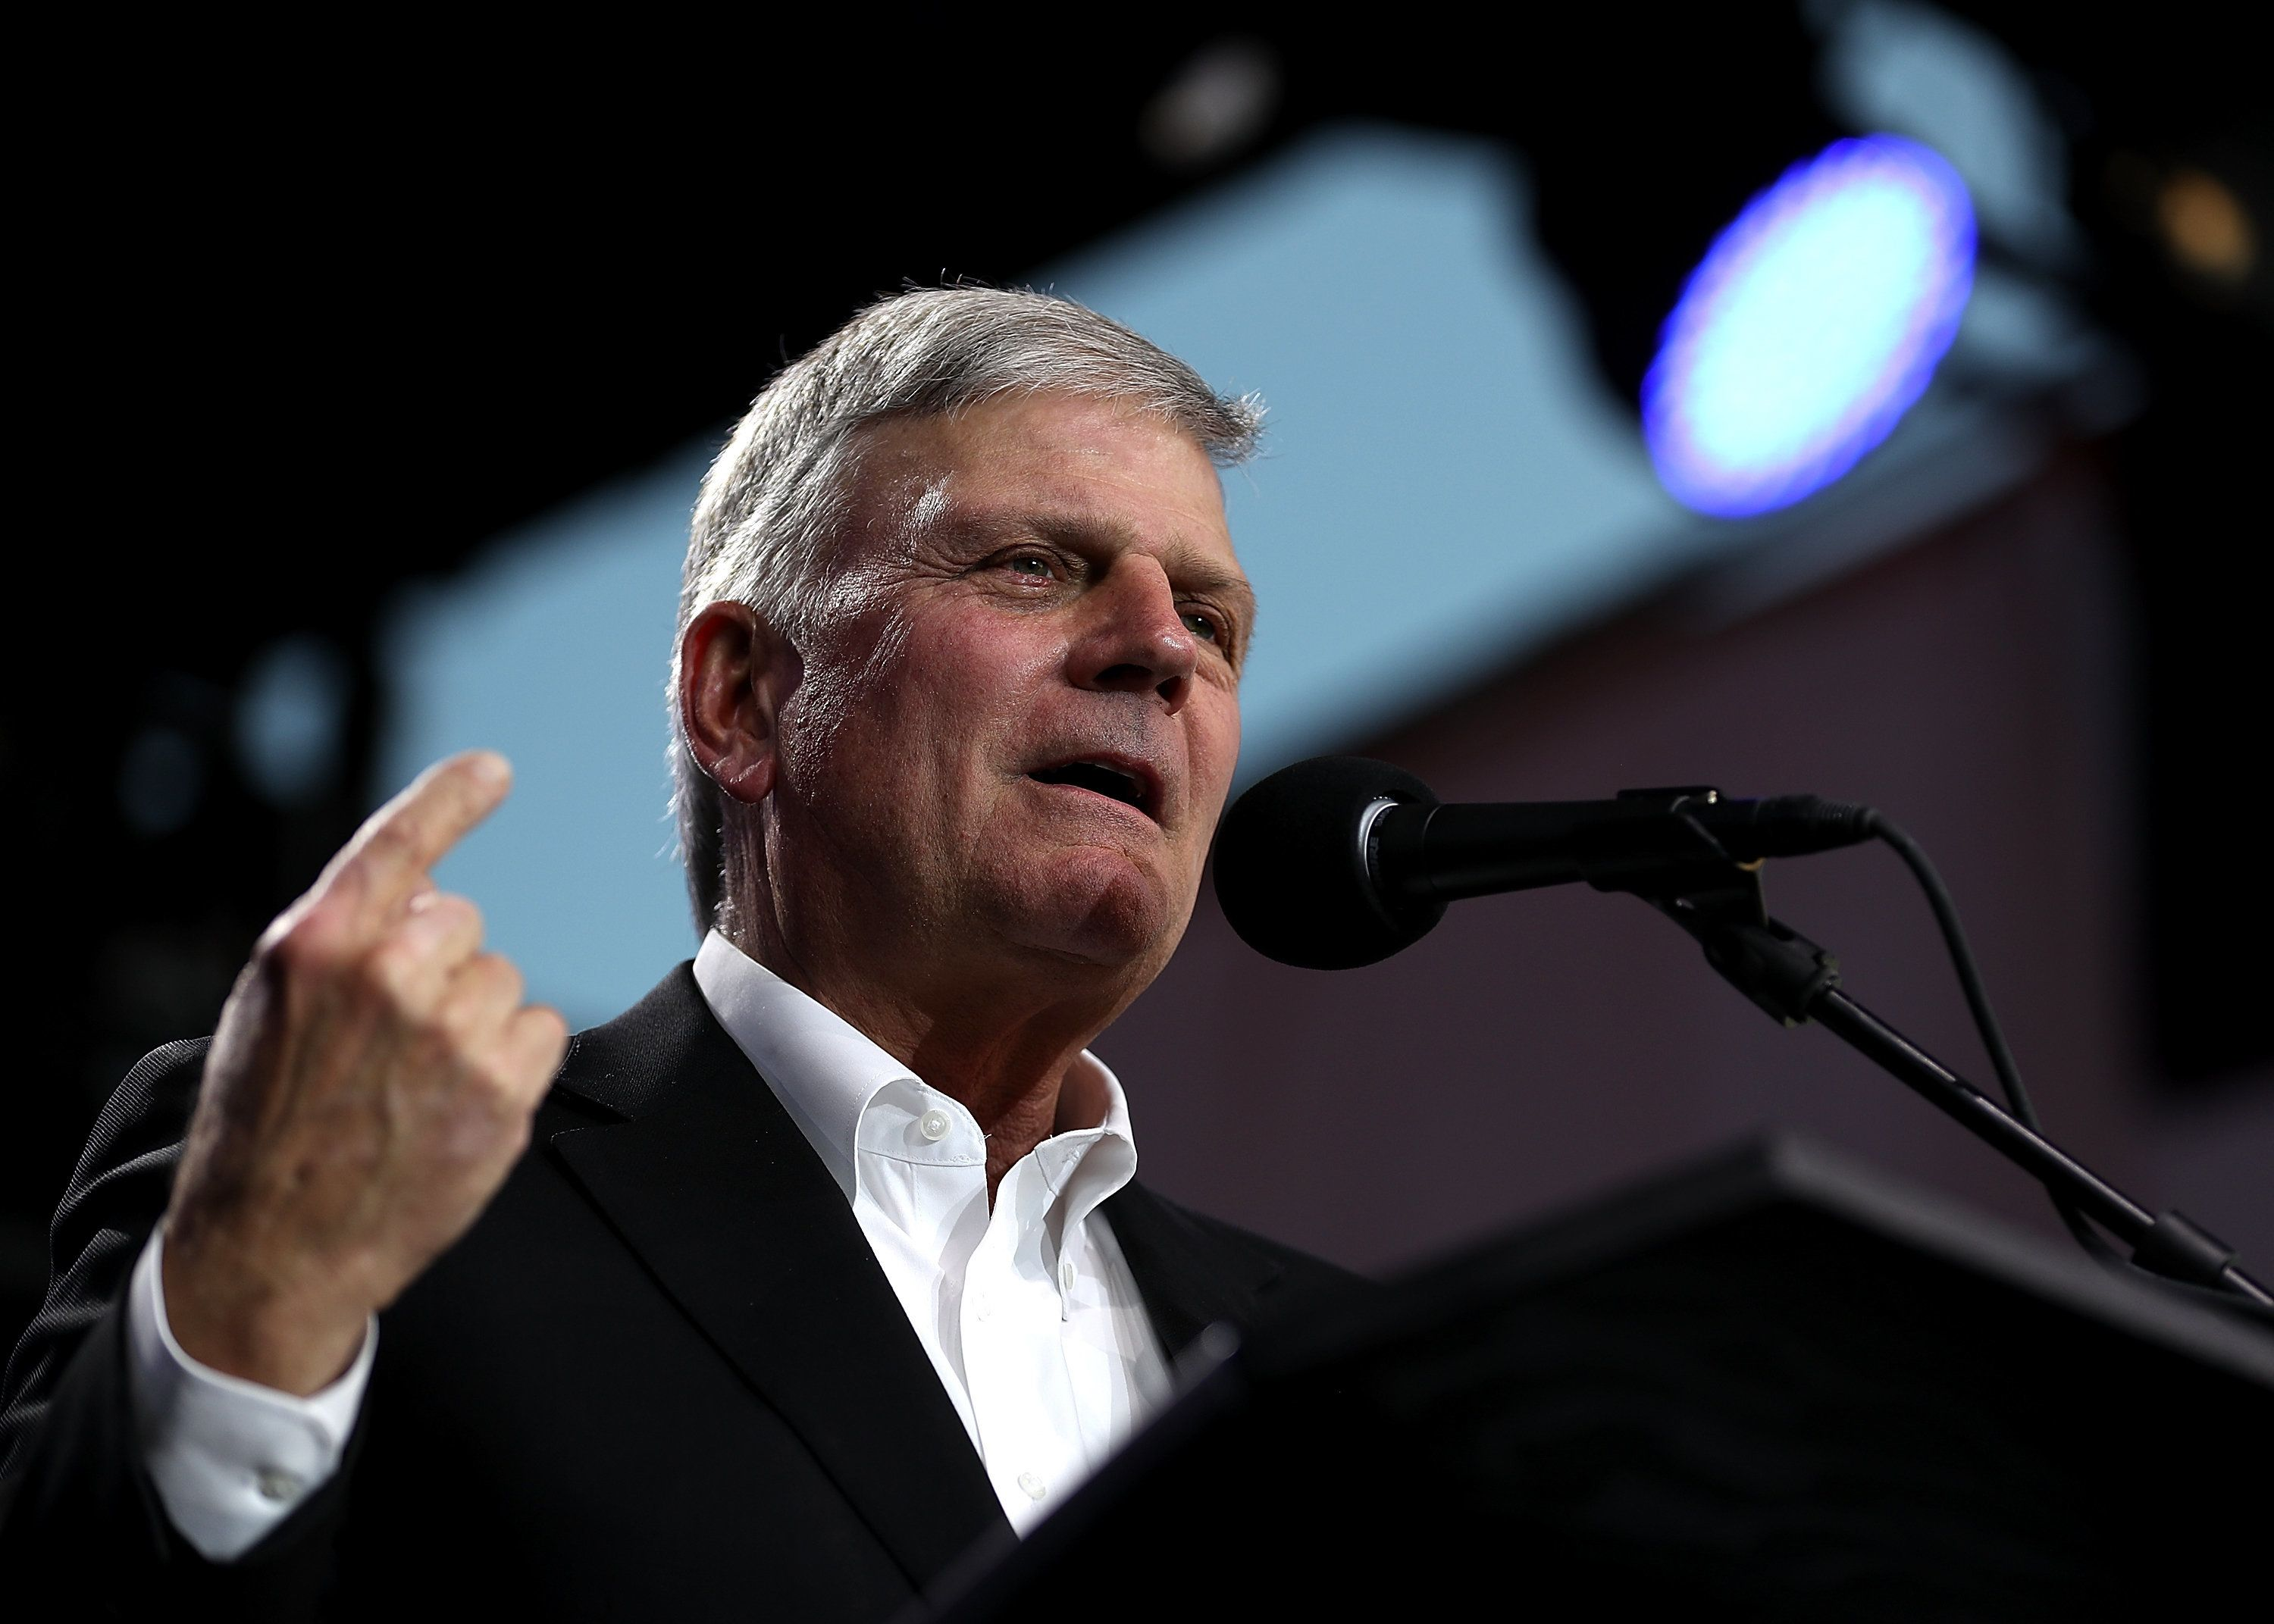 TURLOCK, CA - MAY 29:  Rev. Franklin Graham speaks during Franklin Graham's 'Decision America' California tour at the Stanislaus County Fairgrounds on May 29, 2018 in Turlock, California. Rev. Franklin Graham  is touring California for the weeks leading up to the California primary election on June 5th with a message for evangelicals to vote.  (Photo by Justin Sullivan/Getty Images)